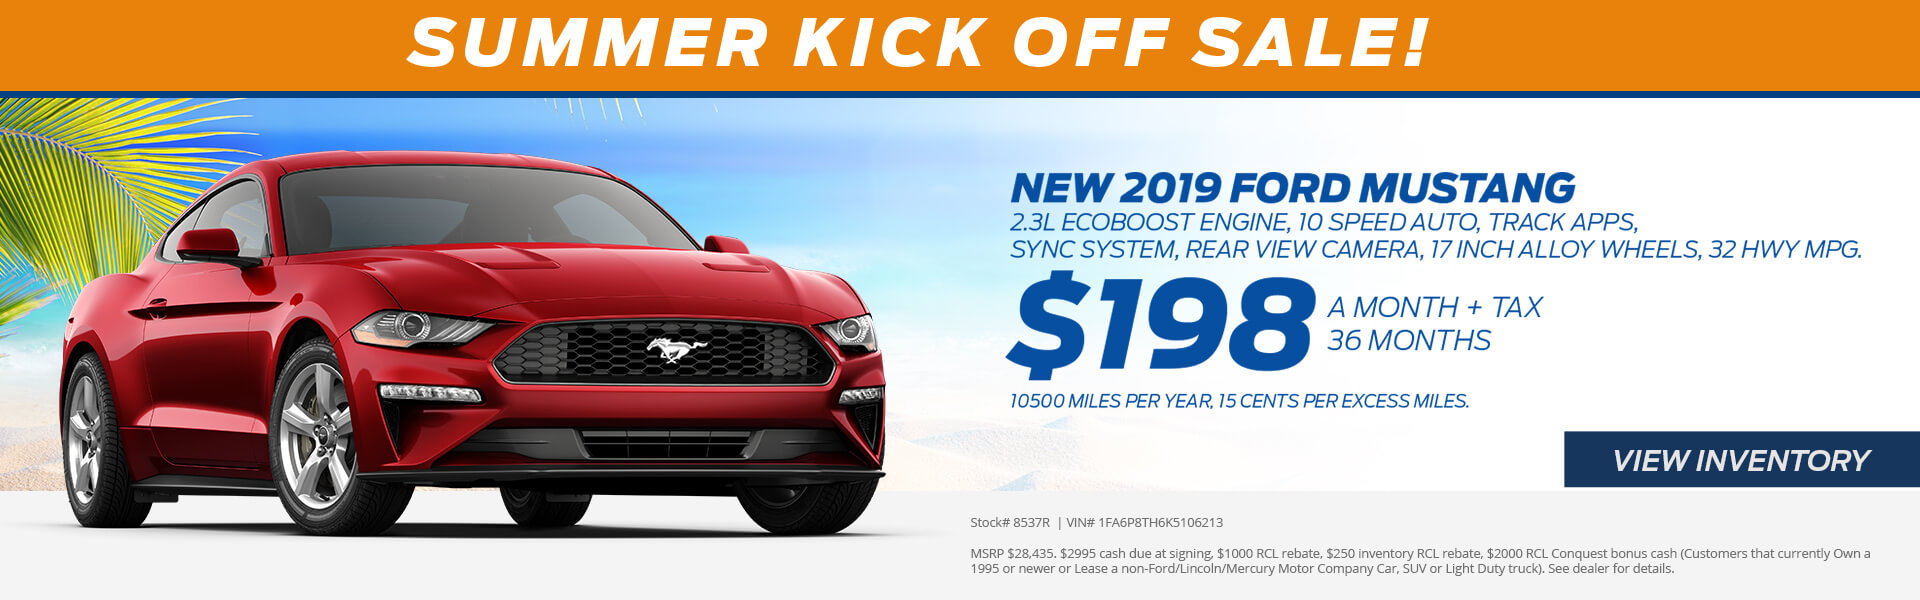 Mustang $198 Lease